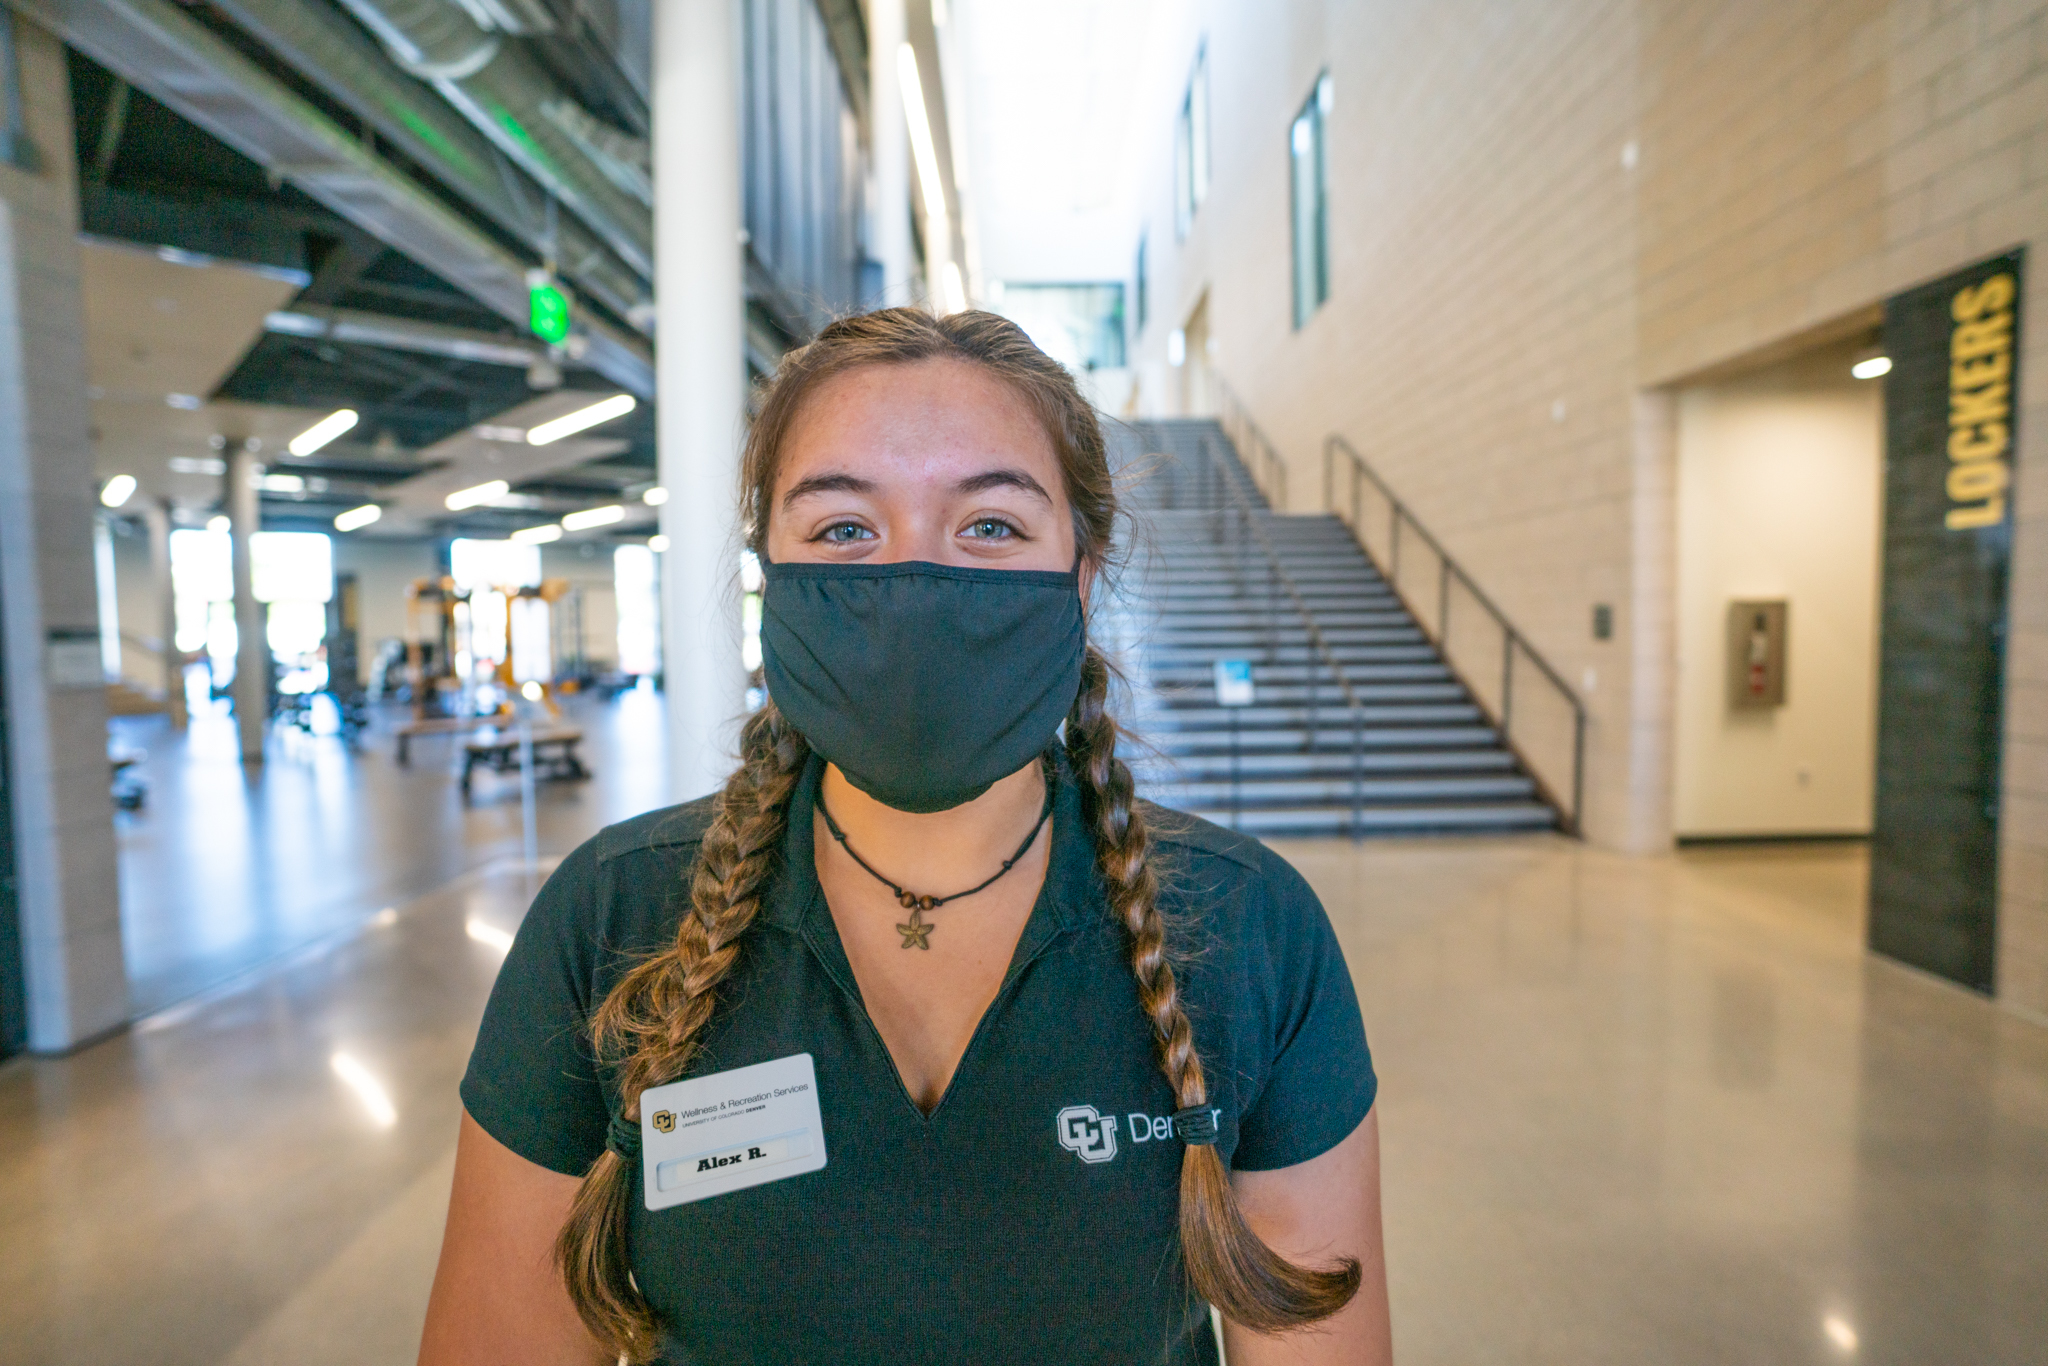 CU Denver student wearing a mask on campus